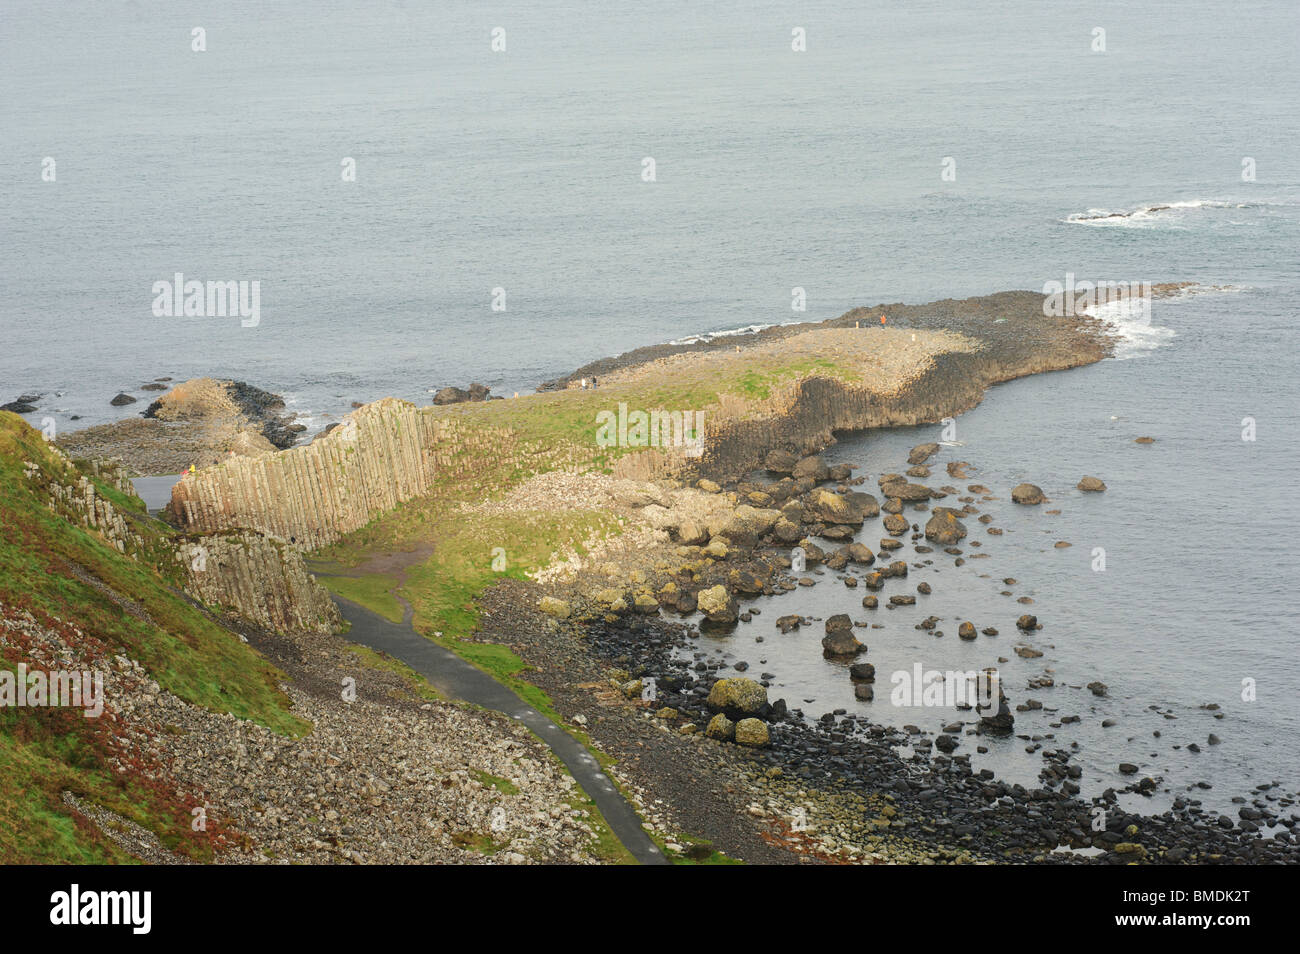 Giant's Causeway, Bushmills, County Antrim, Northern Ireland - Stock Image